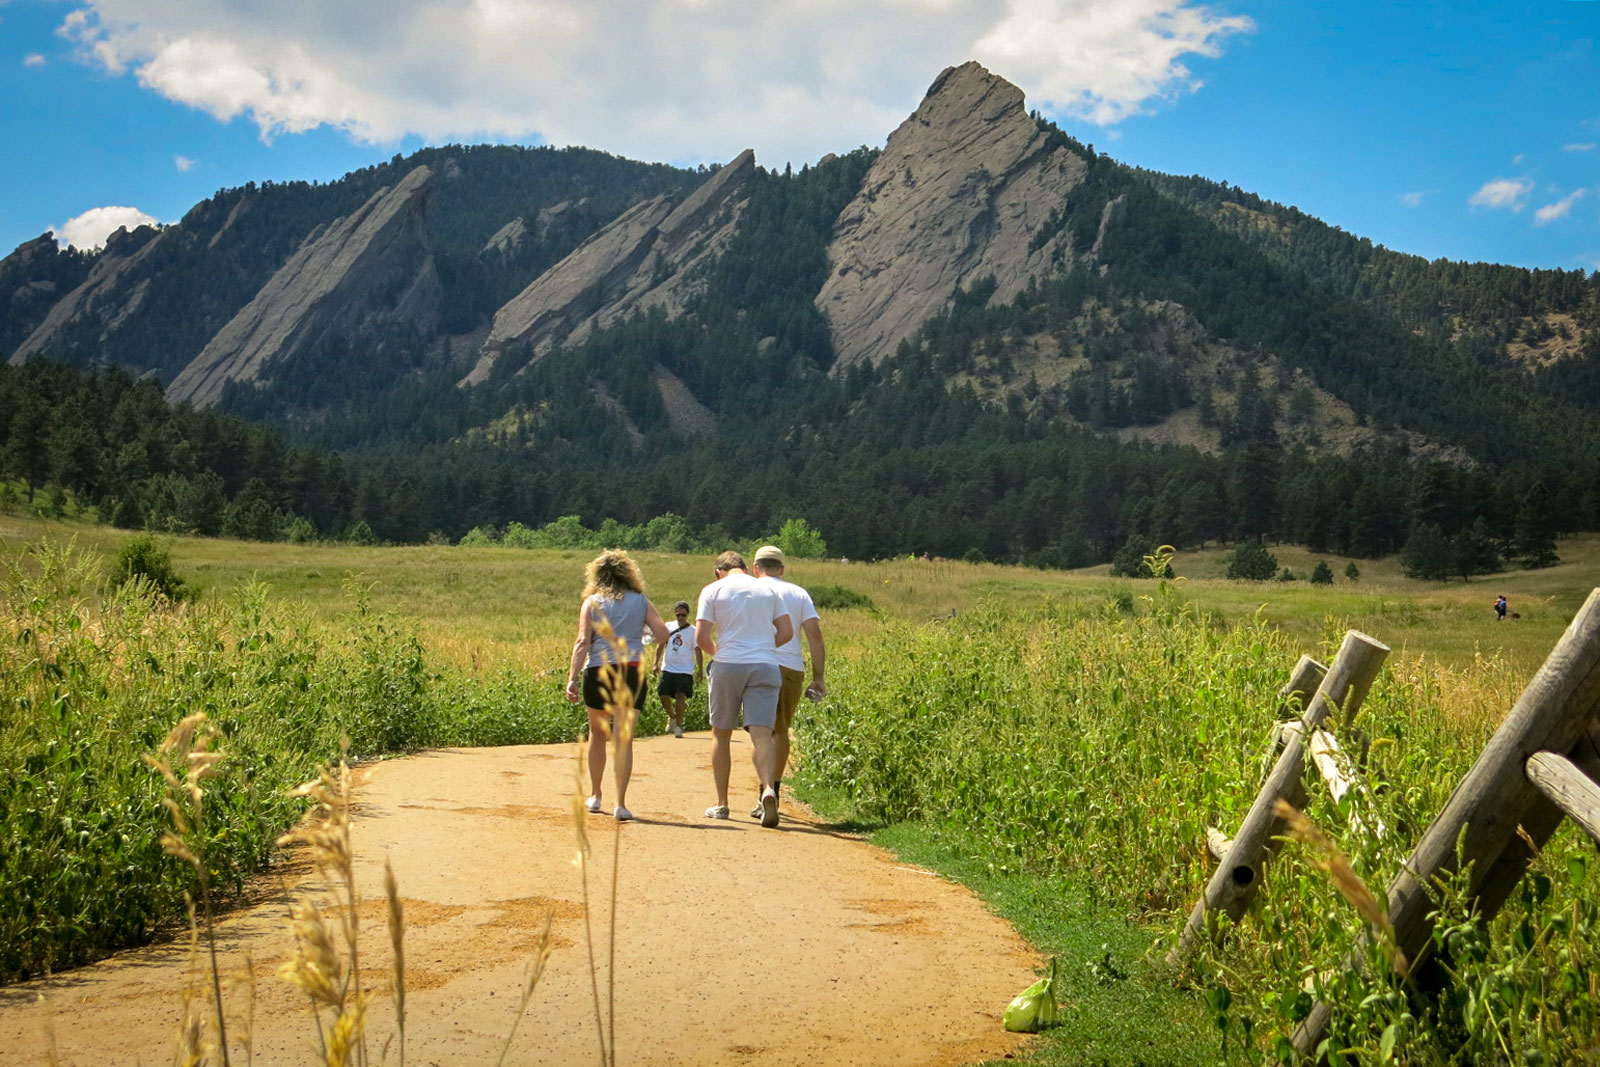 Boulder's open space faces new challenges today with 6.25 million annual visitors to trails, more than Rocky Mountain National Park.